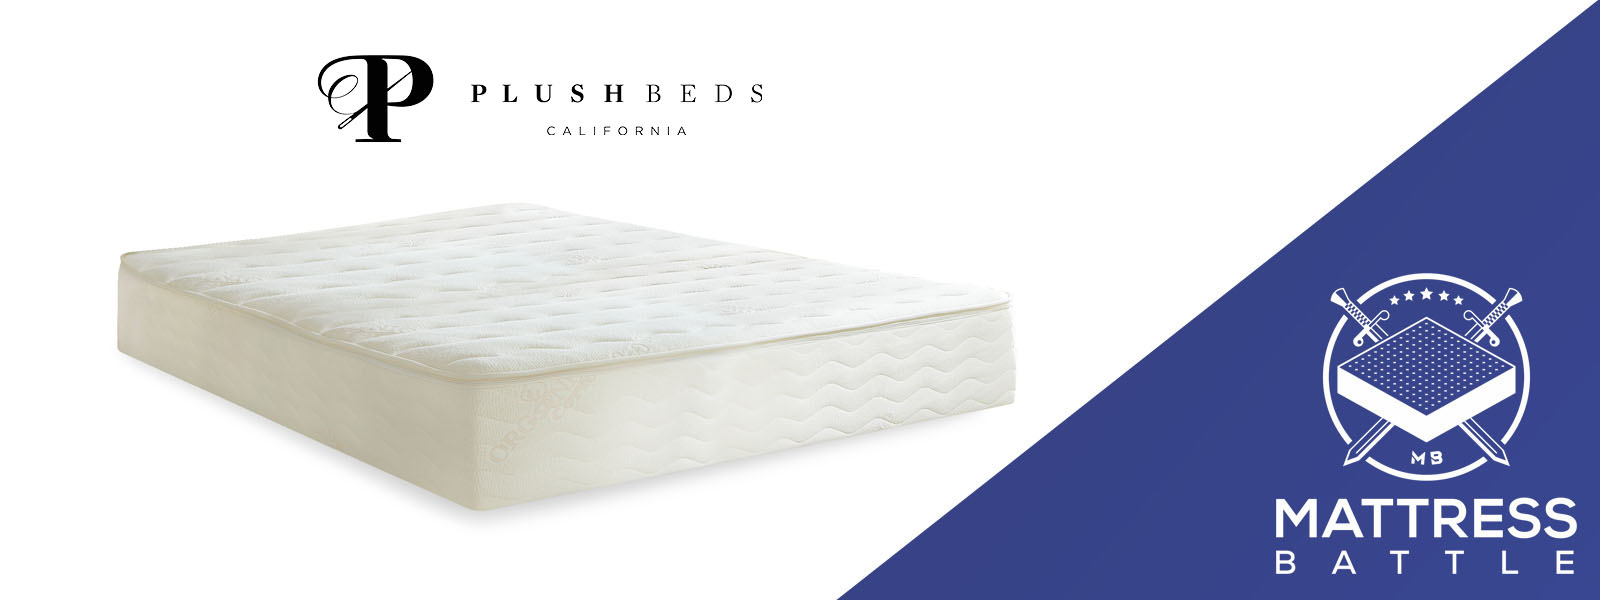 Plushbed Mattress Bed